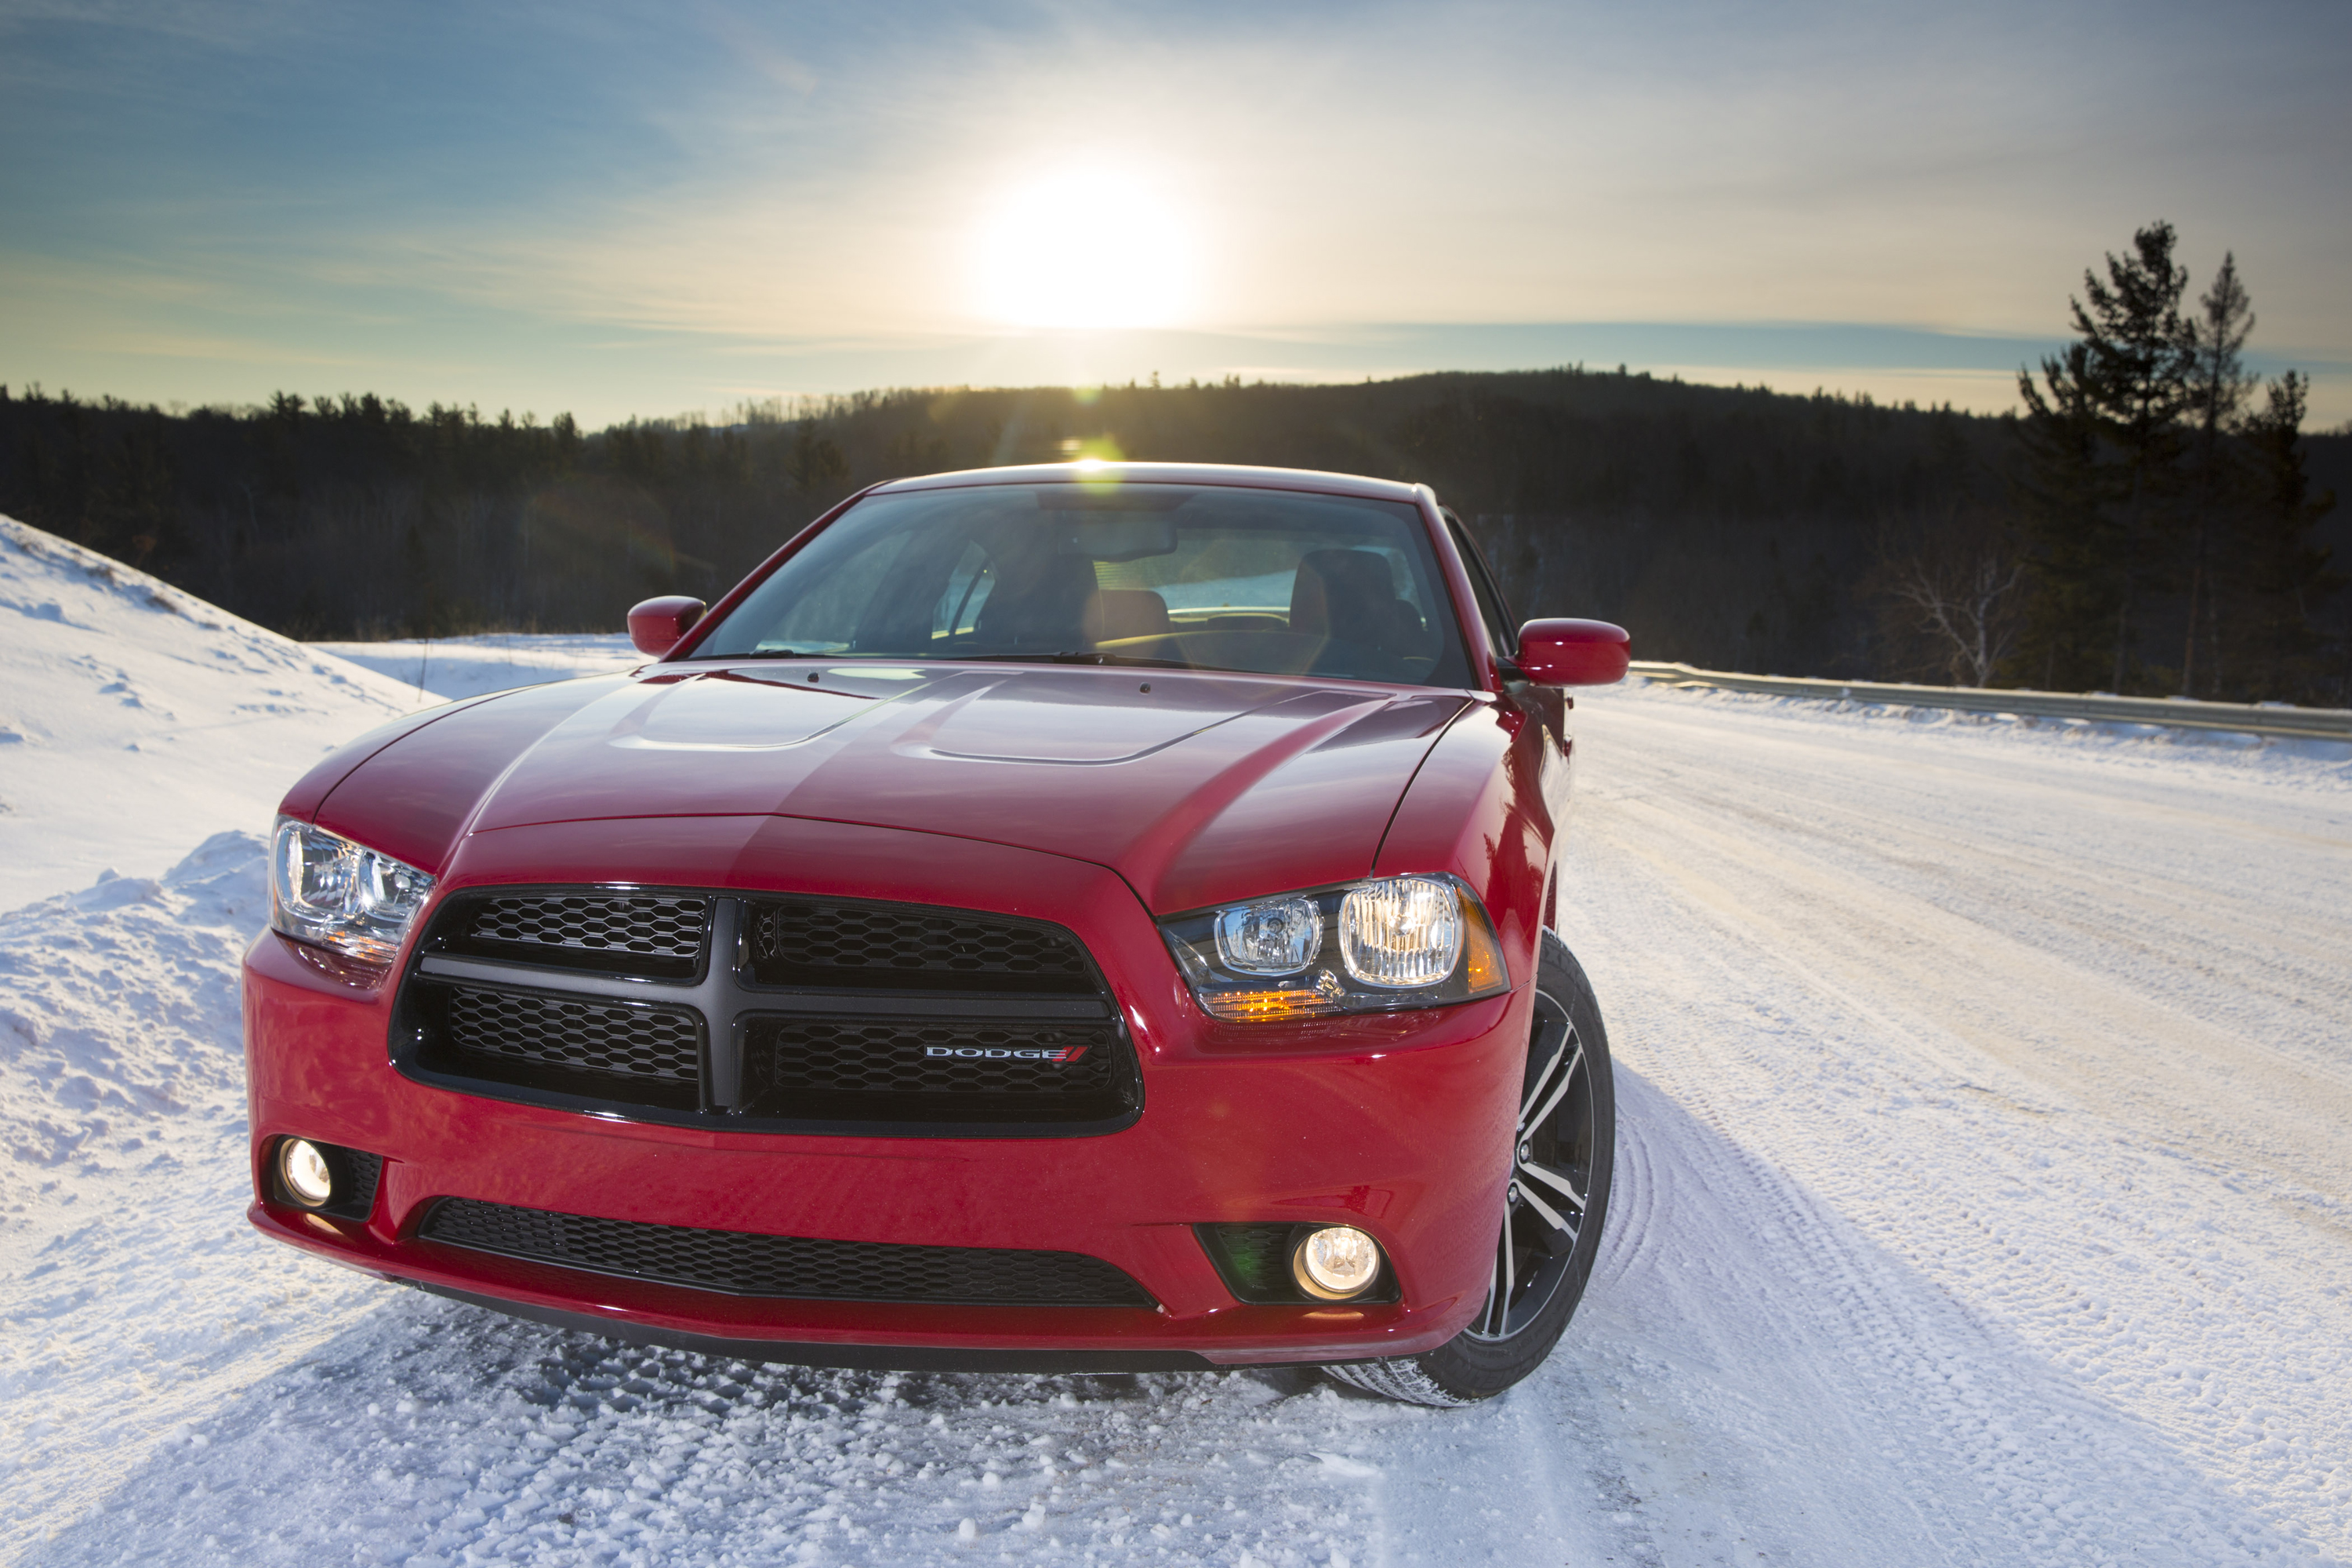 2013 dodge charger awd sport review top speed. Black Bedroom Furniture Sets. Home Design Ideas